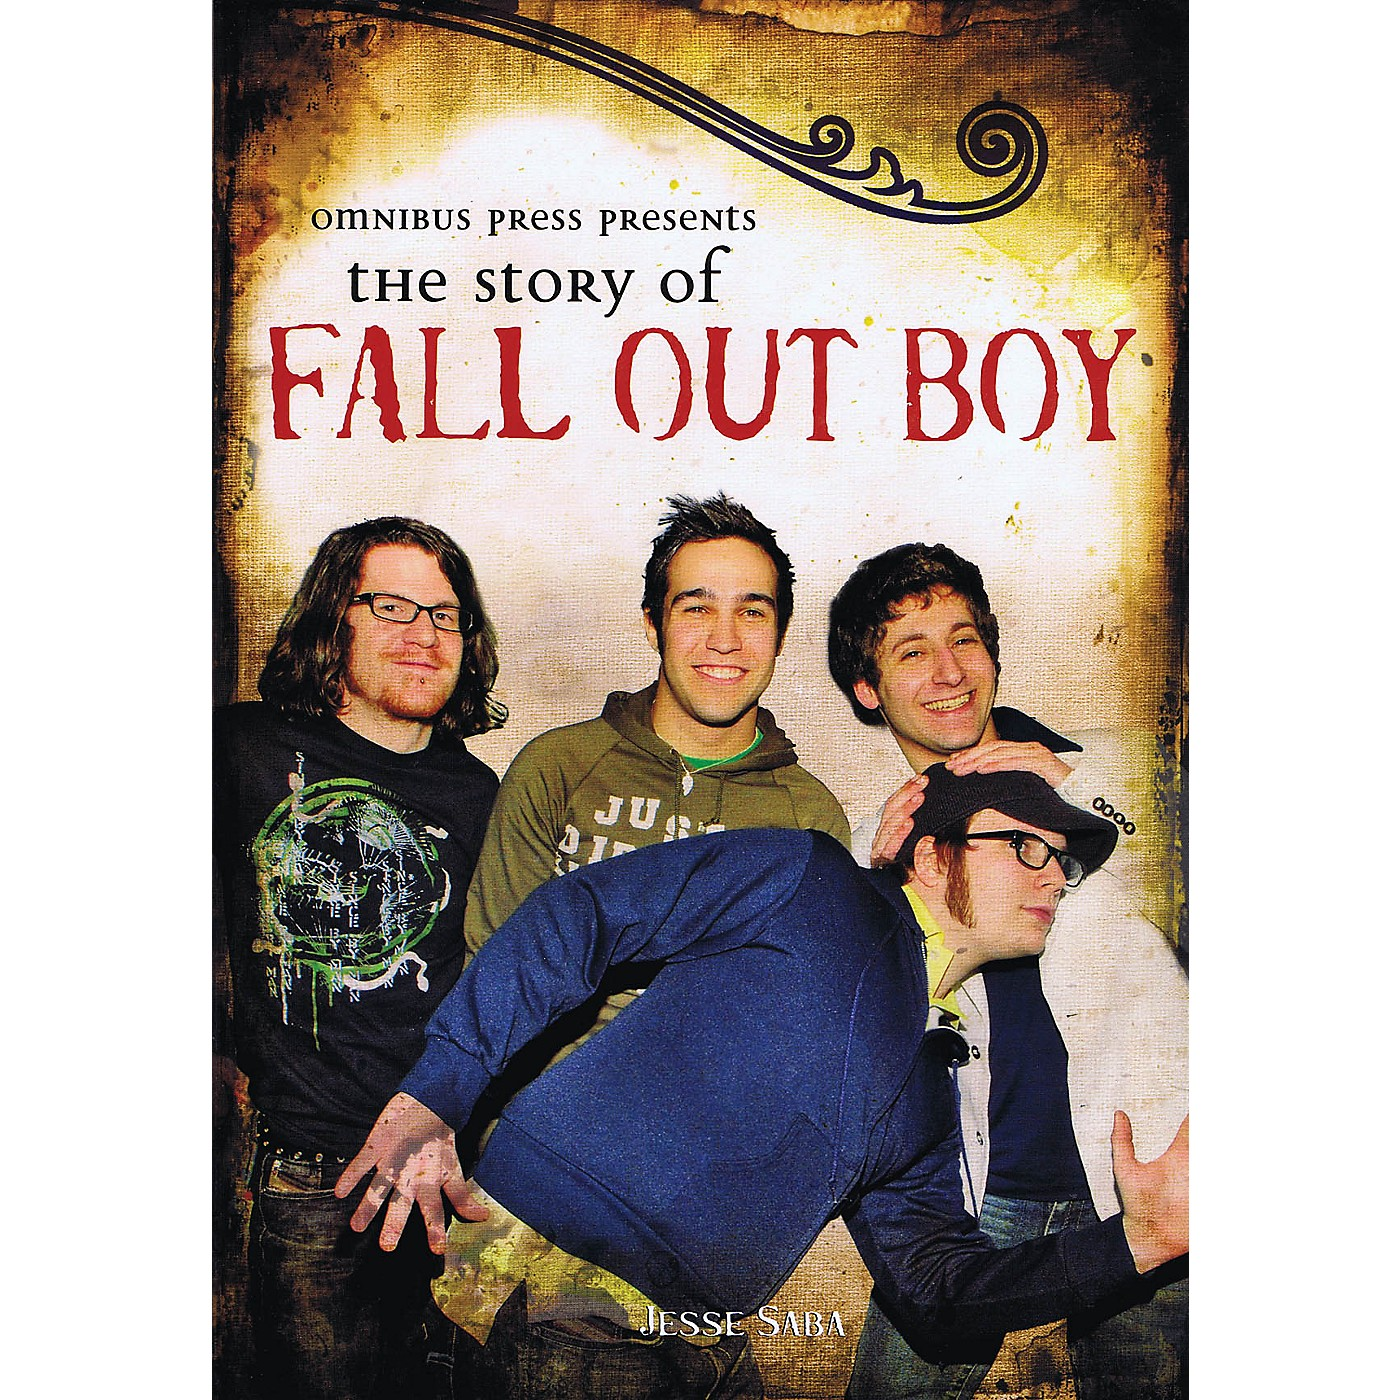 Omnibus Omnibus Press Presents The Story of Fall Out Boy Omnibus Press Series Softcover thumbnail